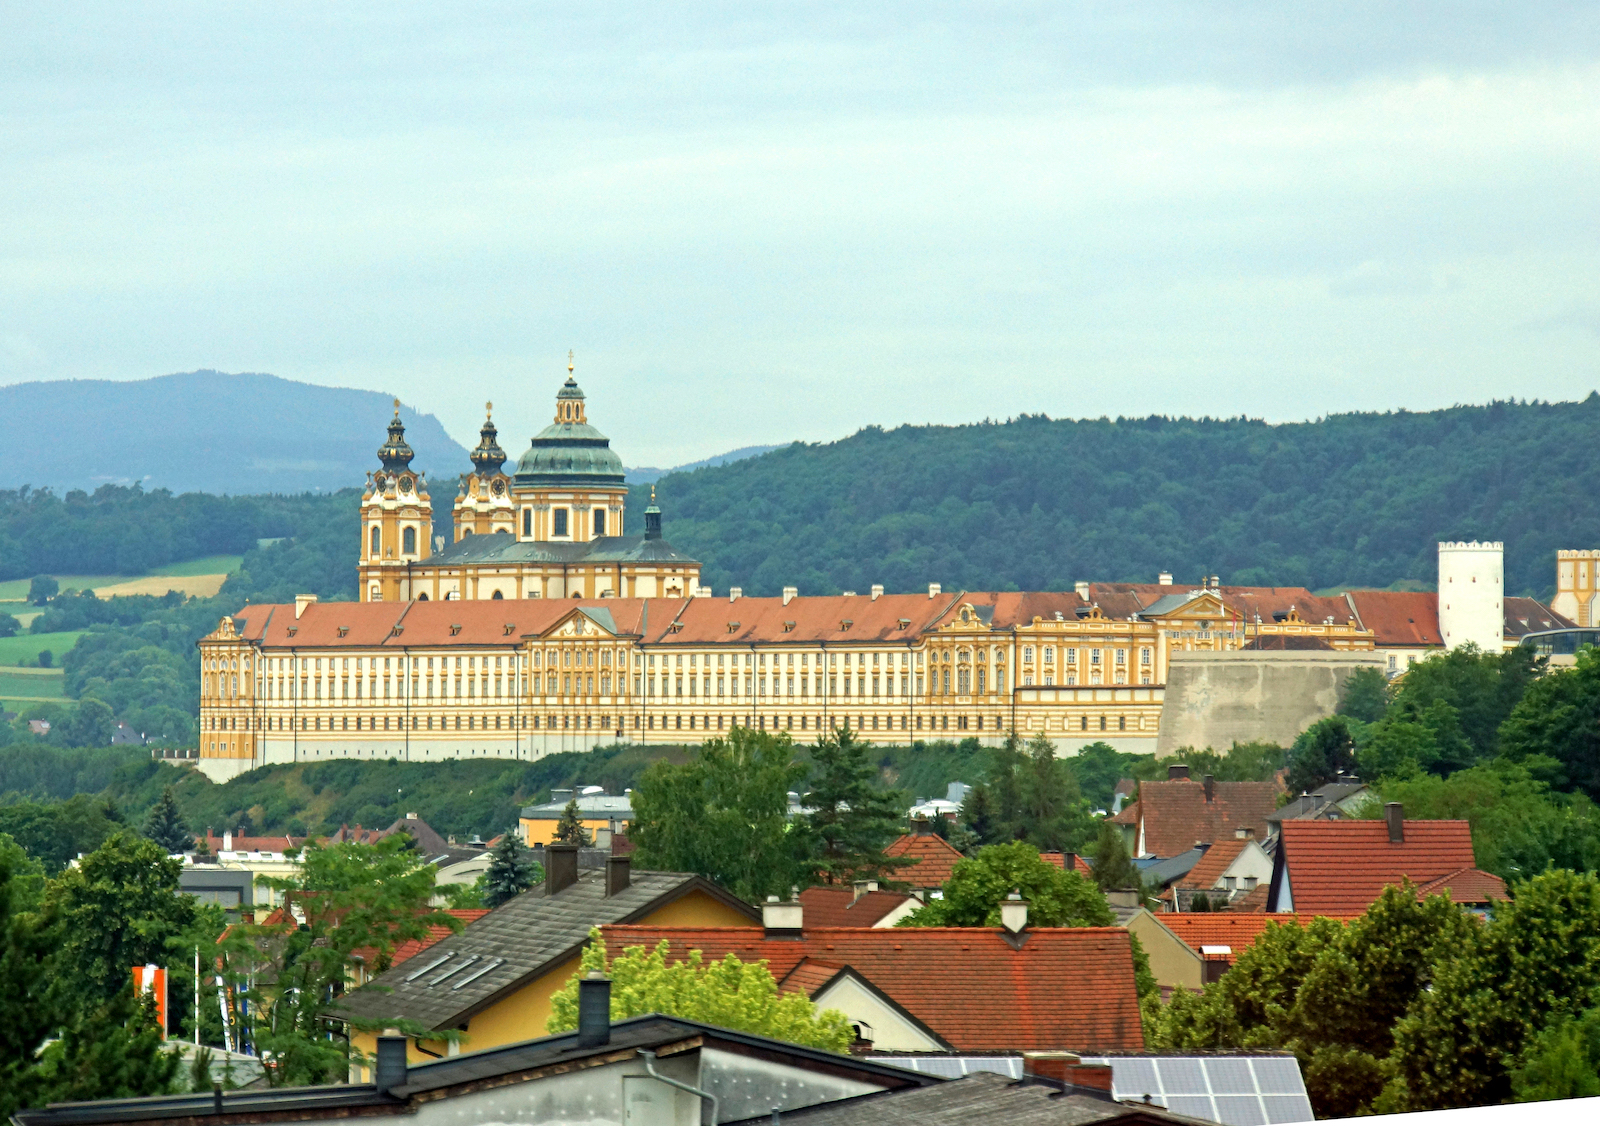 Melk Benedictine Abbey, Austria